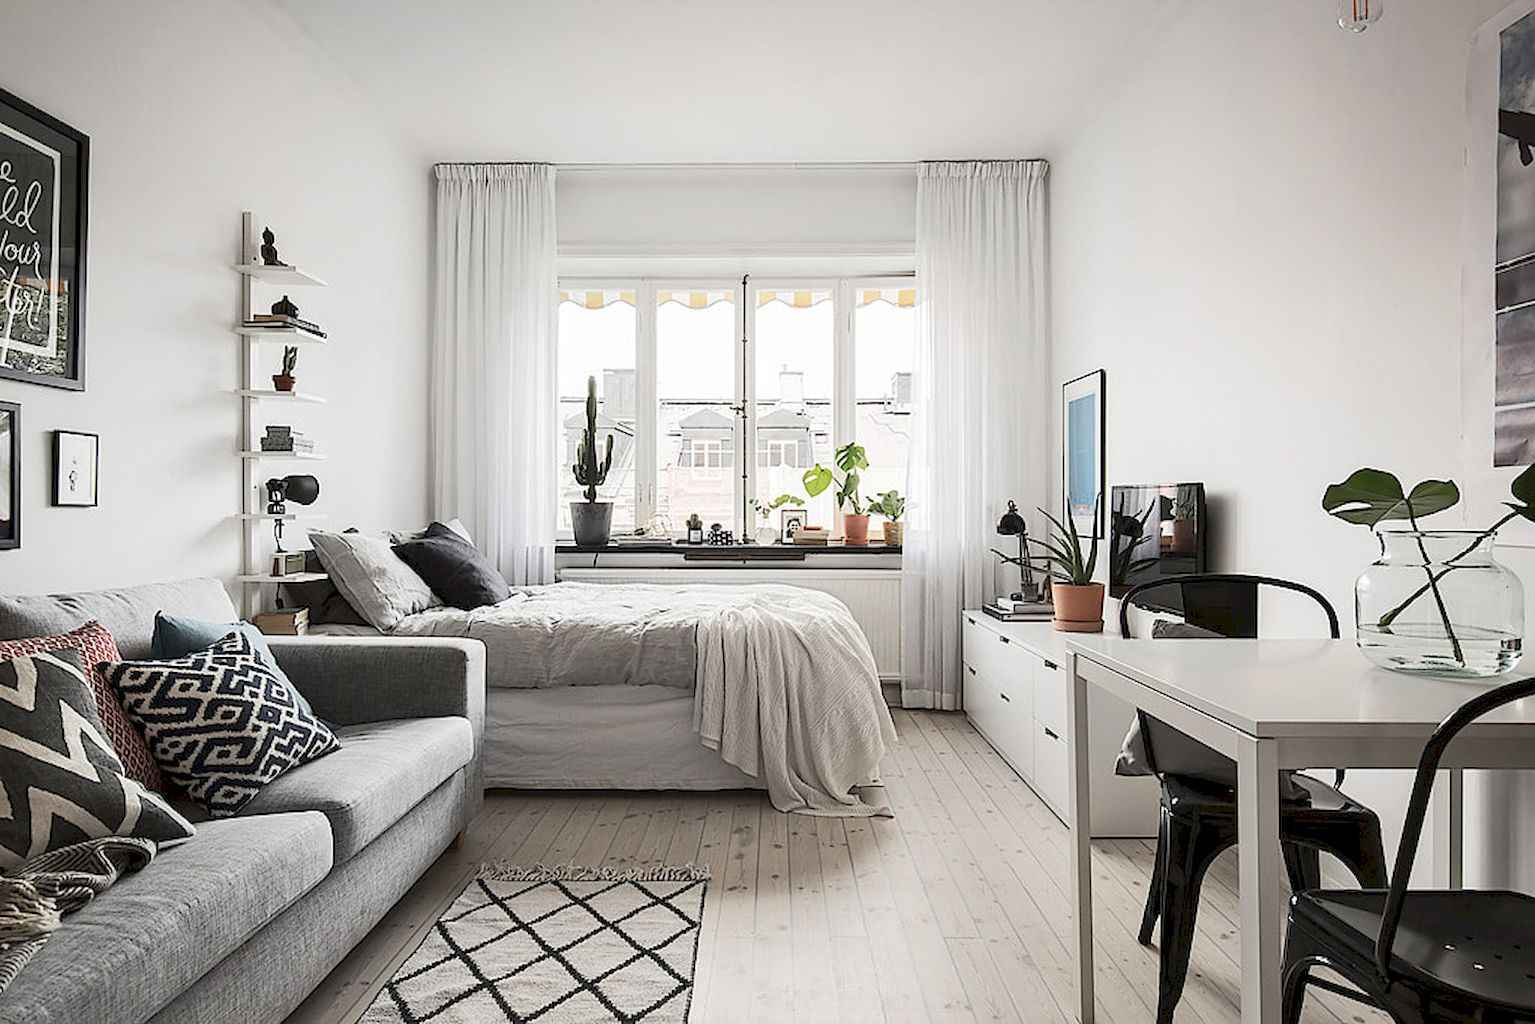 Small apartment studio decorating ideas on a budget (75)